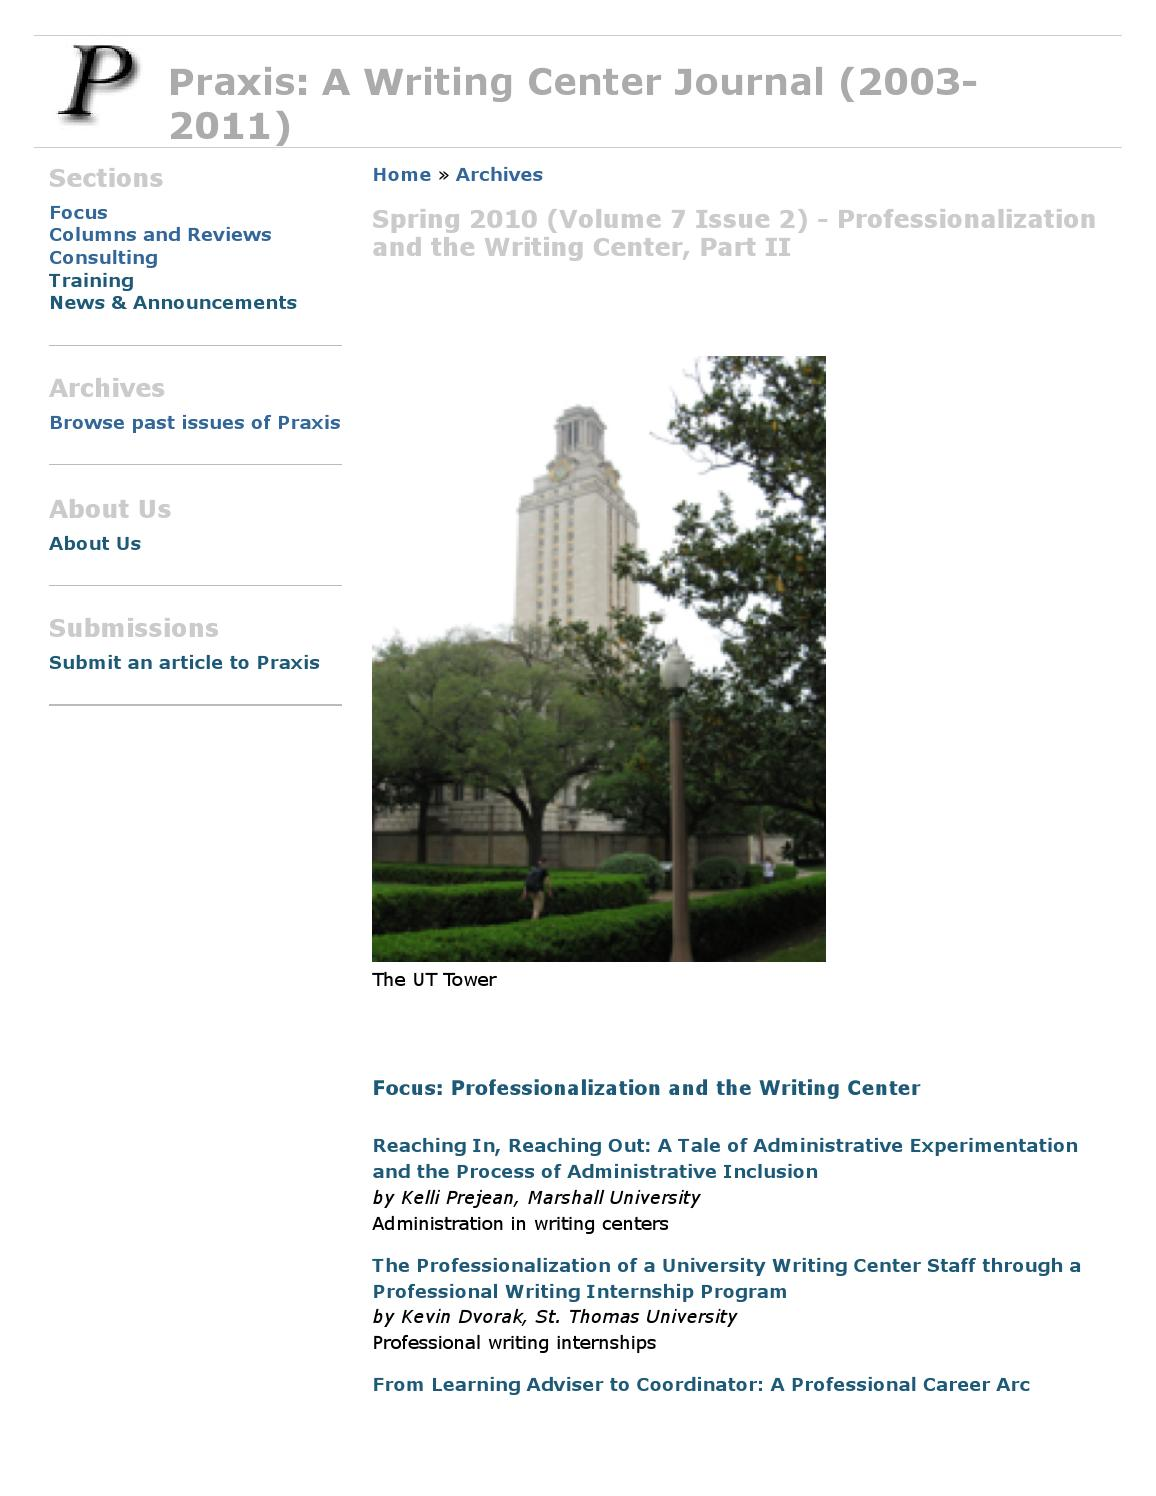 Vol 7 No 2 (2010): Professionalization and the Writing Center, Part 2 by  PraxisUWC - issuu